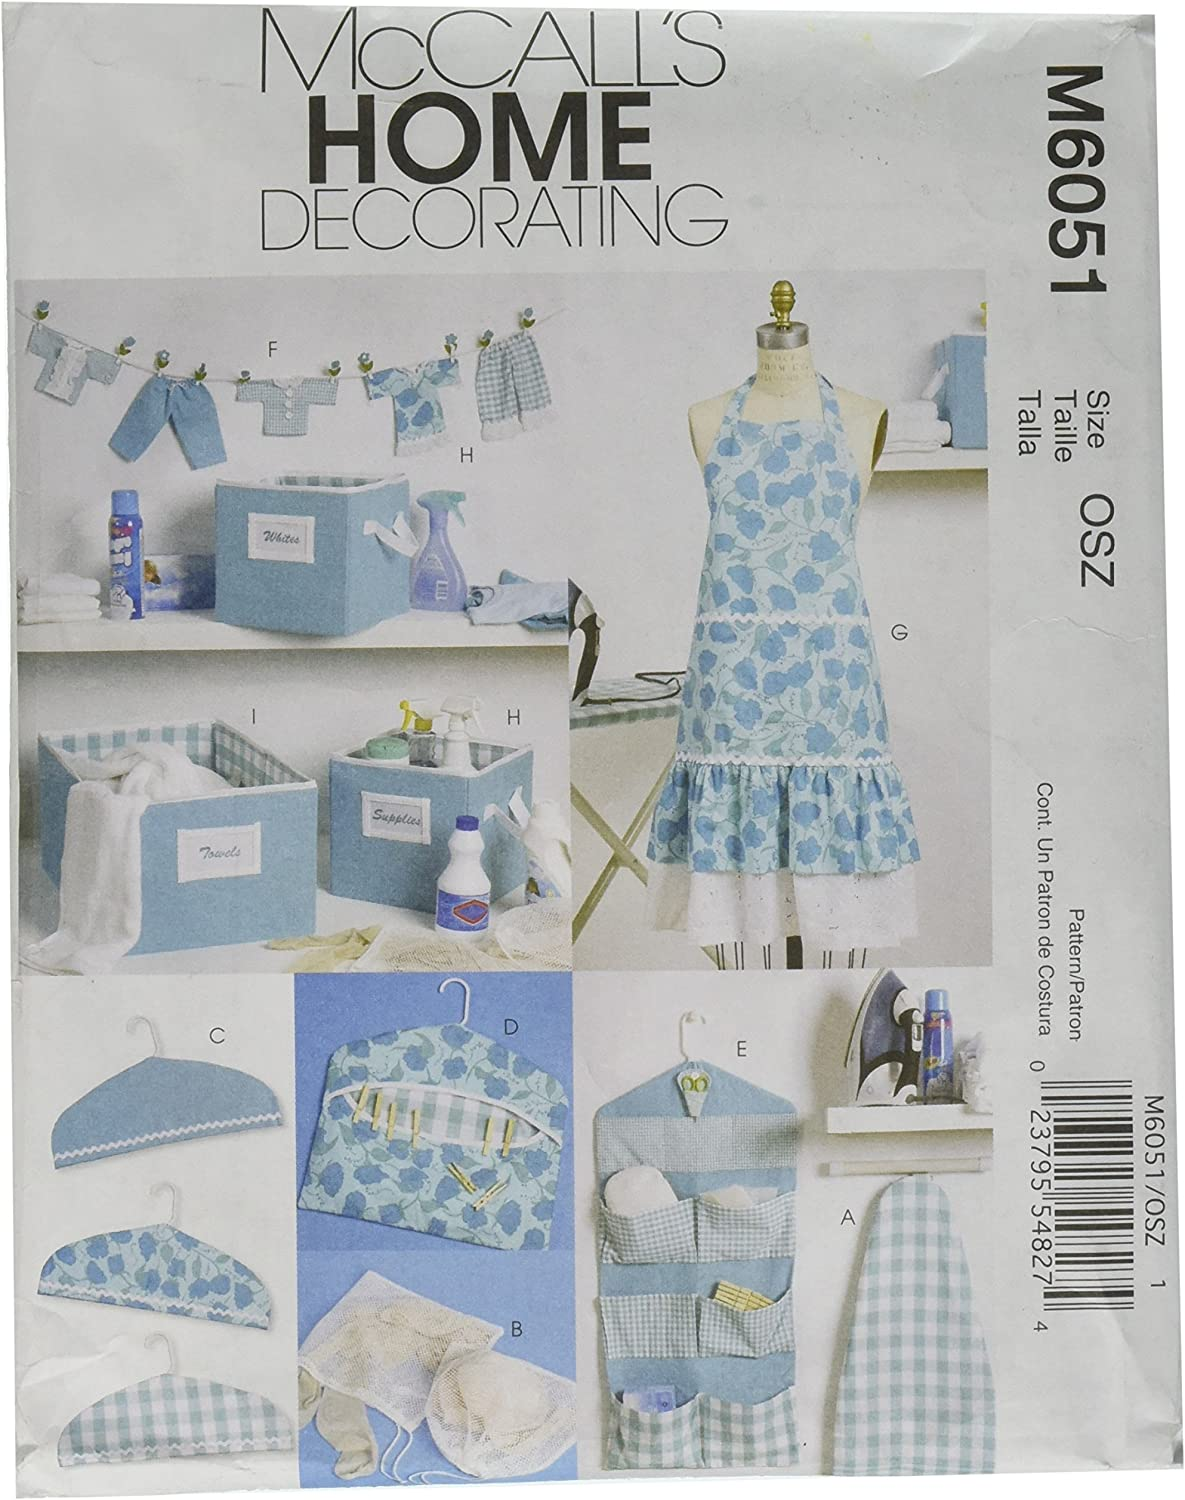 McCall's Patterns M6051 Apron, Ironing Board Cover, Organizer, Bins, Hanger Cover, Clothespin Holder, Banner and Scissor Caddy